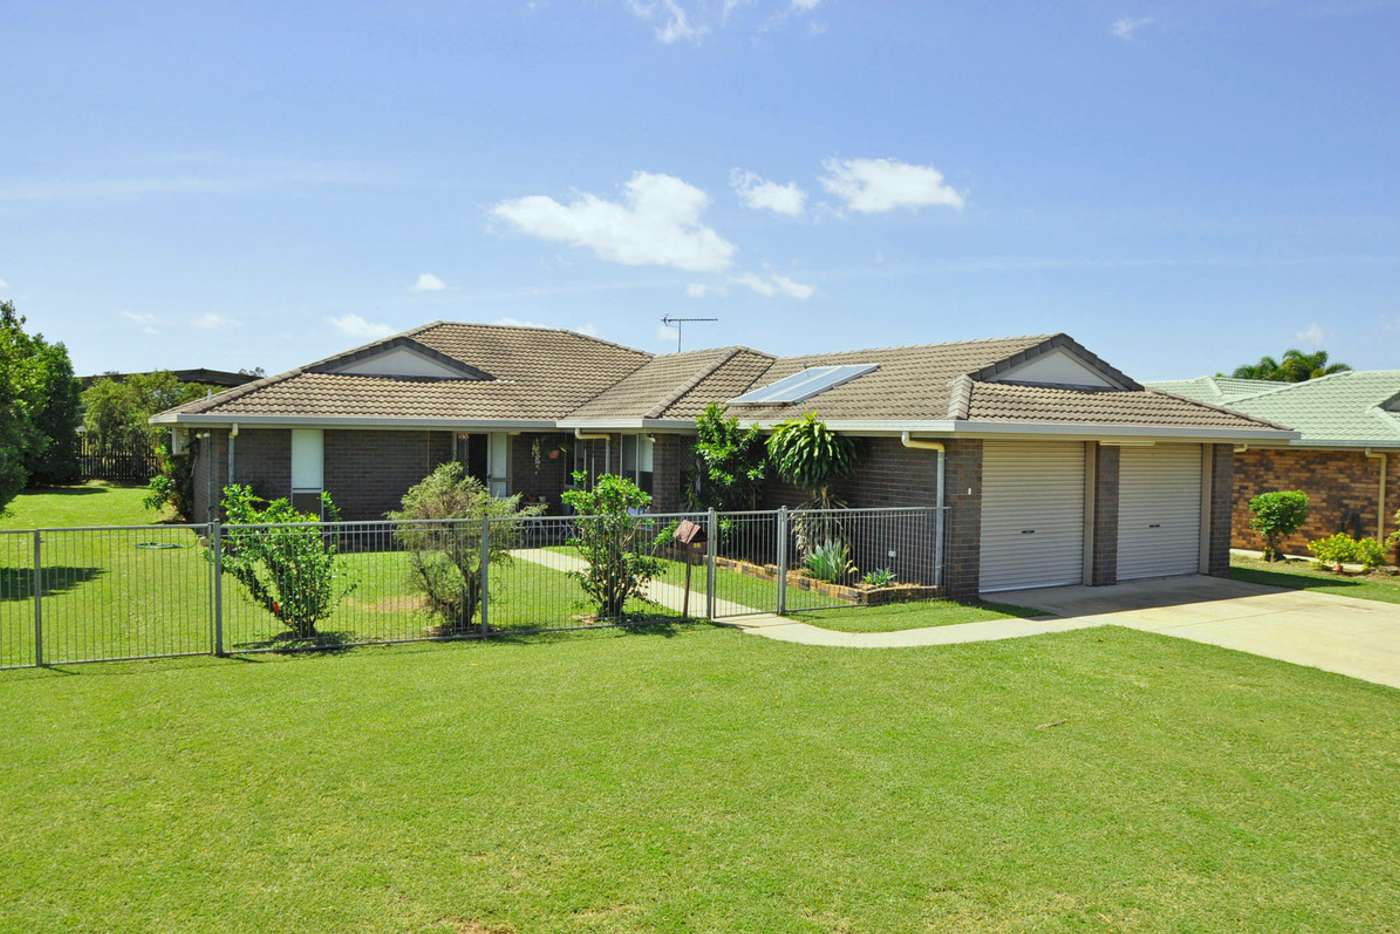 Main view of Homely house listing, 25 Ceola Drive, Mareeba QLD 4880